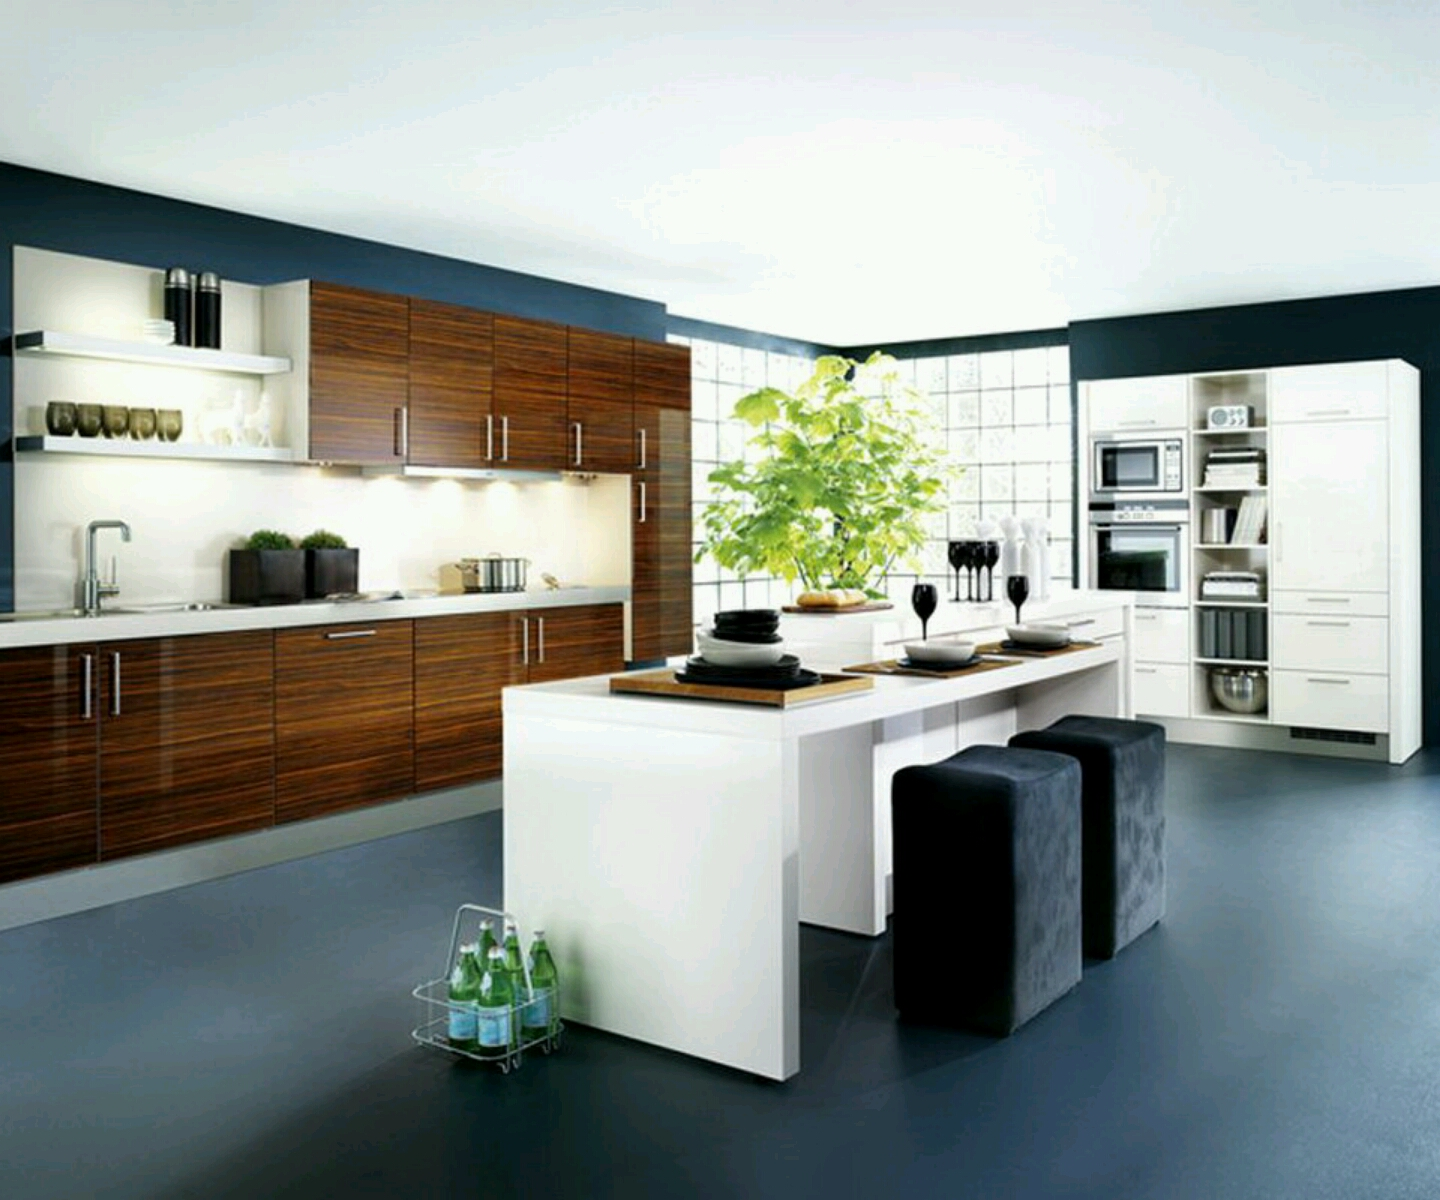 Http Shoaibnzm Home Design Blogspot Com 2013 01 Kitchen Cabinets Designs Modern Homes Html